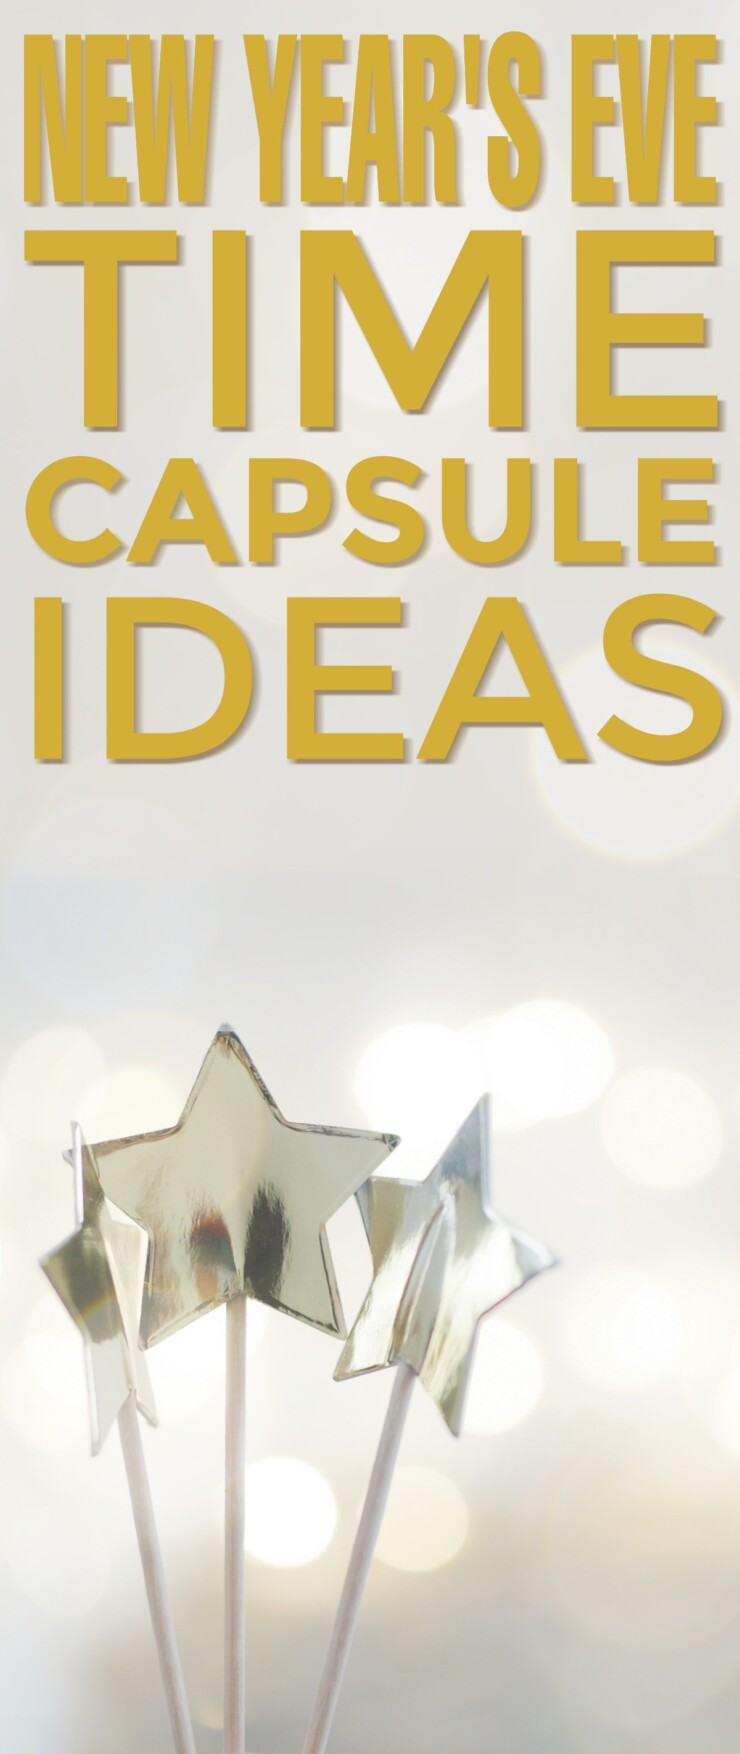 New Year's Eve is the perfect holiday to celebrate a fantastic year. Celebrate with a time capsule, you can open it the next year and reflect on how wonderful the last year has been for you.